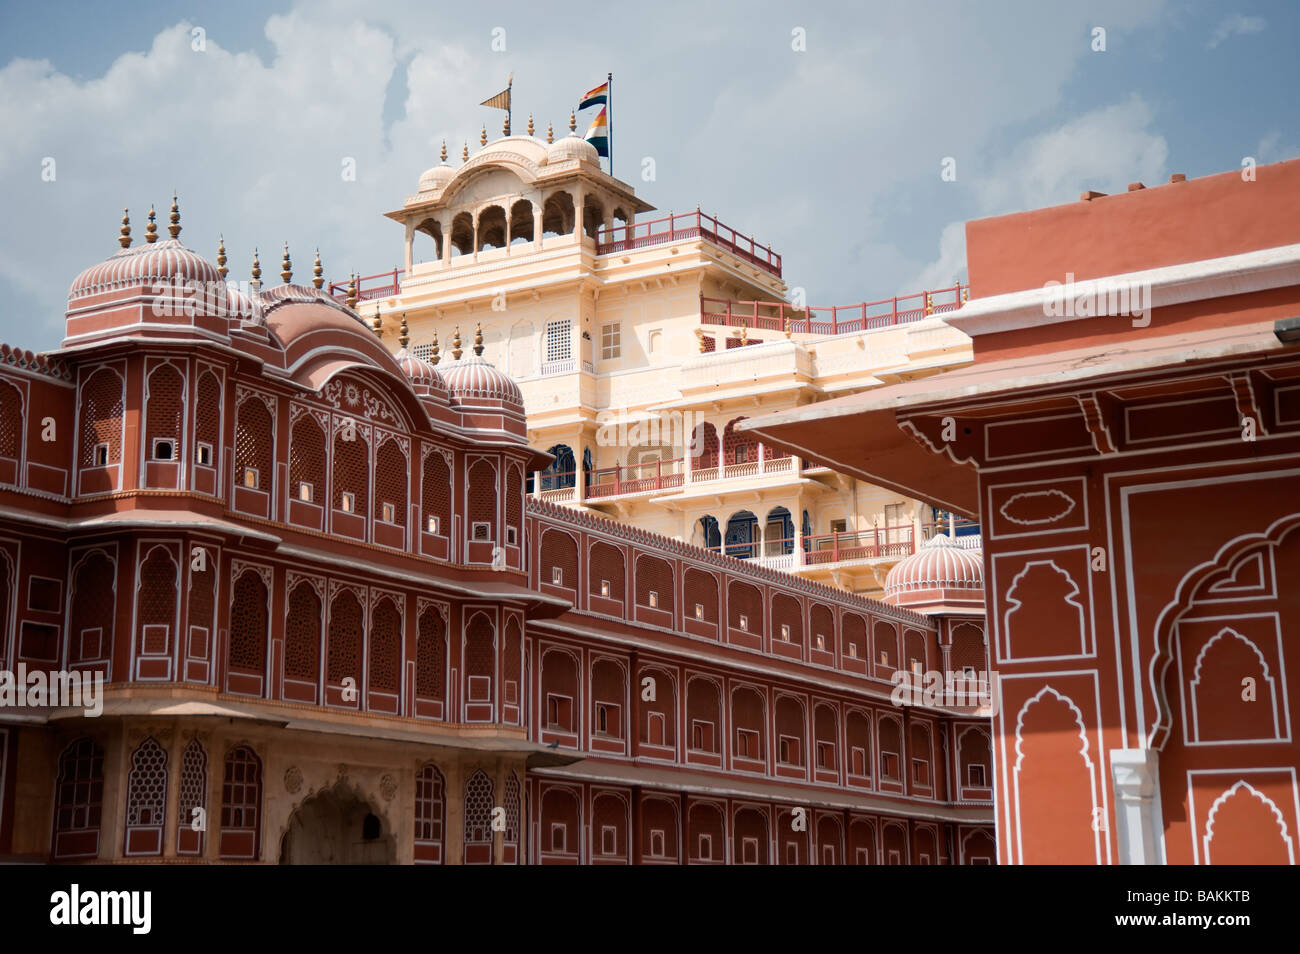 Jaipur City Palace of Jai Singh II Inner courtyard with the Riddhi Siddhi Pol and the Chandra Mahal Palace in the - Stock Image